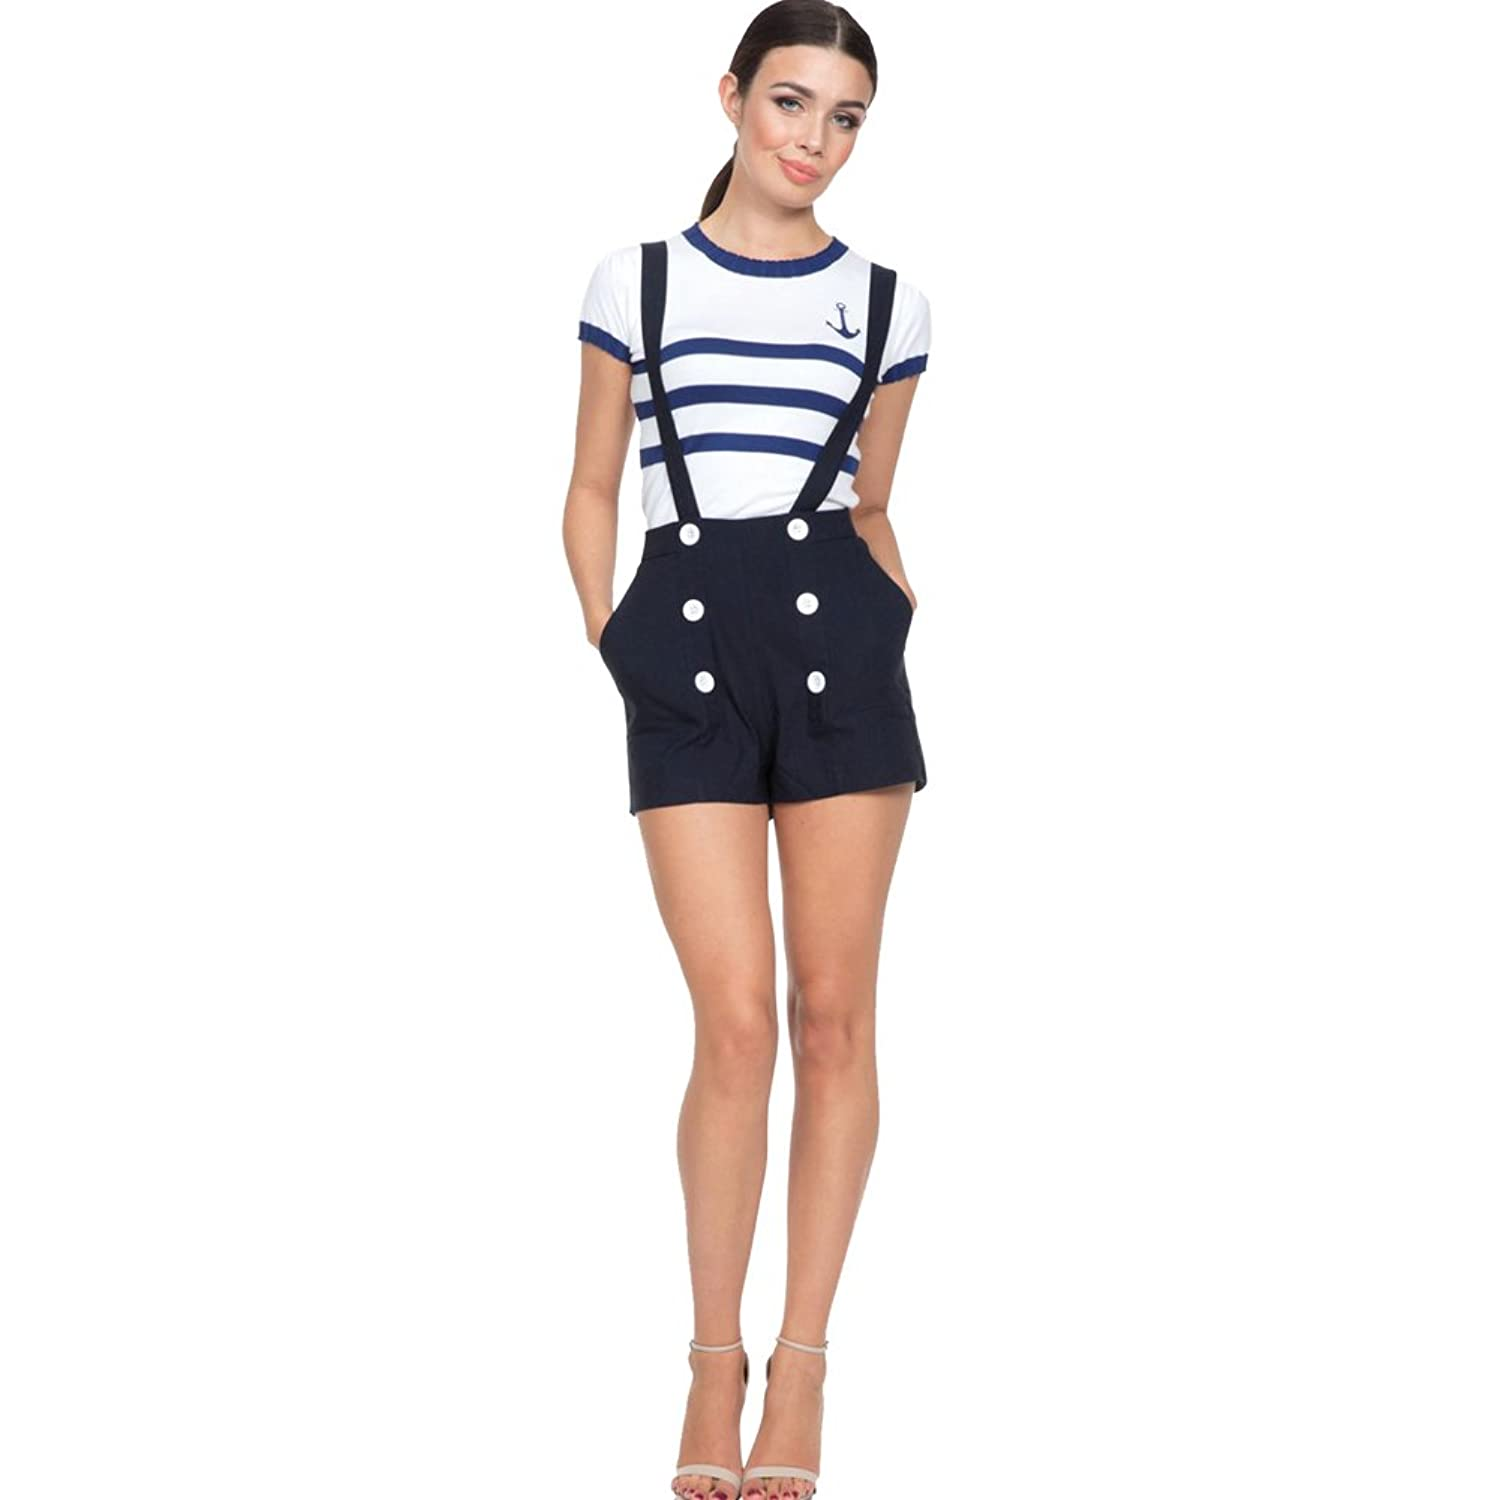 Vintage High Waisted Shorts, Sailor Shorts, Retro Shorts Womens Voodoo Vixen DAISY Nautical Shorts Navy $48.95 AT vintagedancer.com